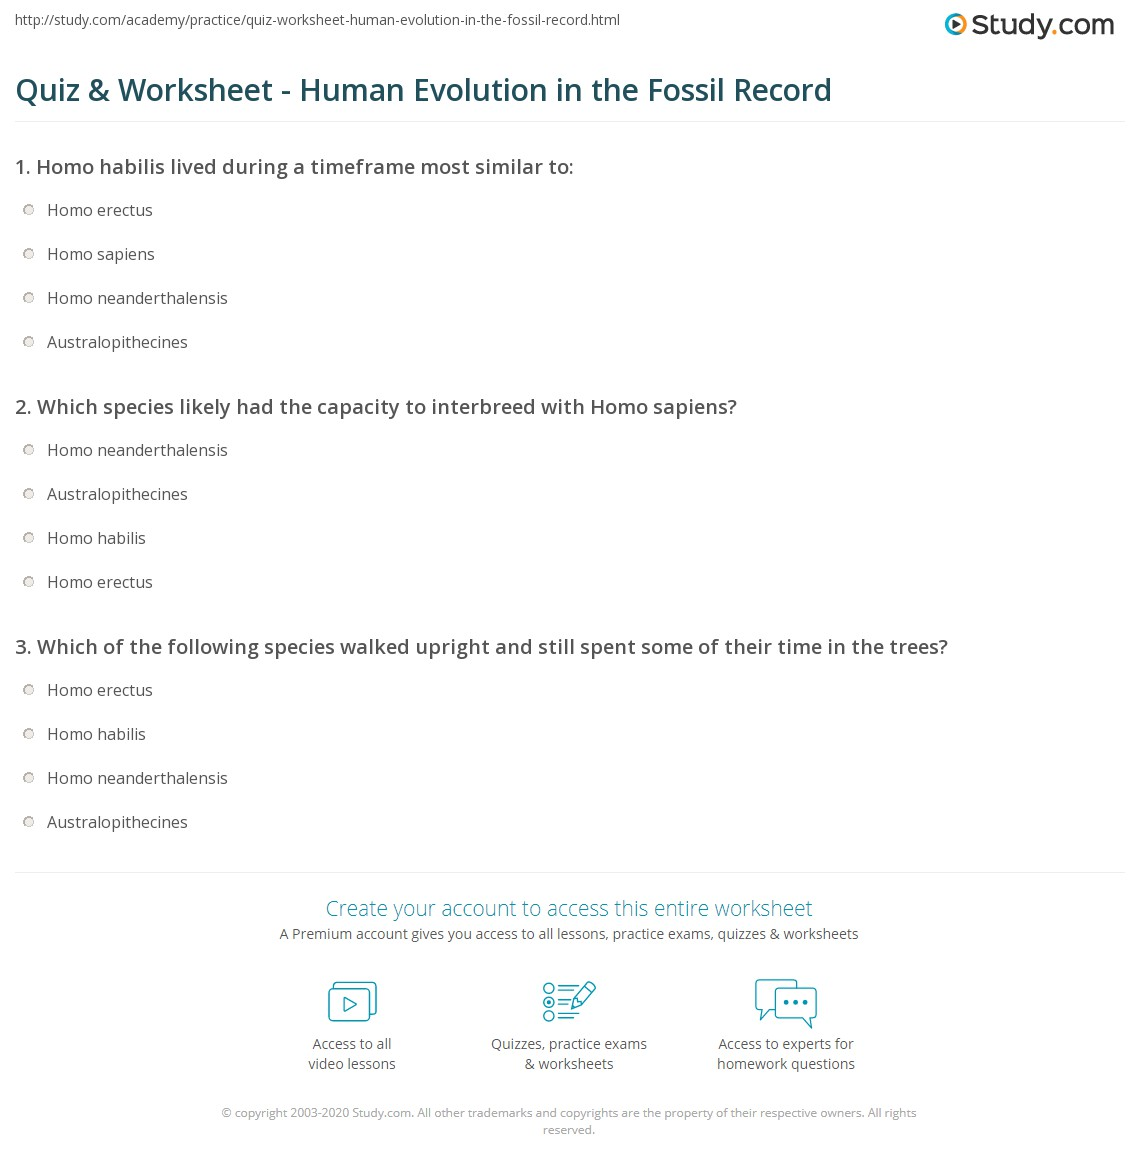 Quiz Worksheet Human Evolution In The Fossil Record